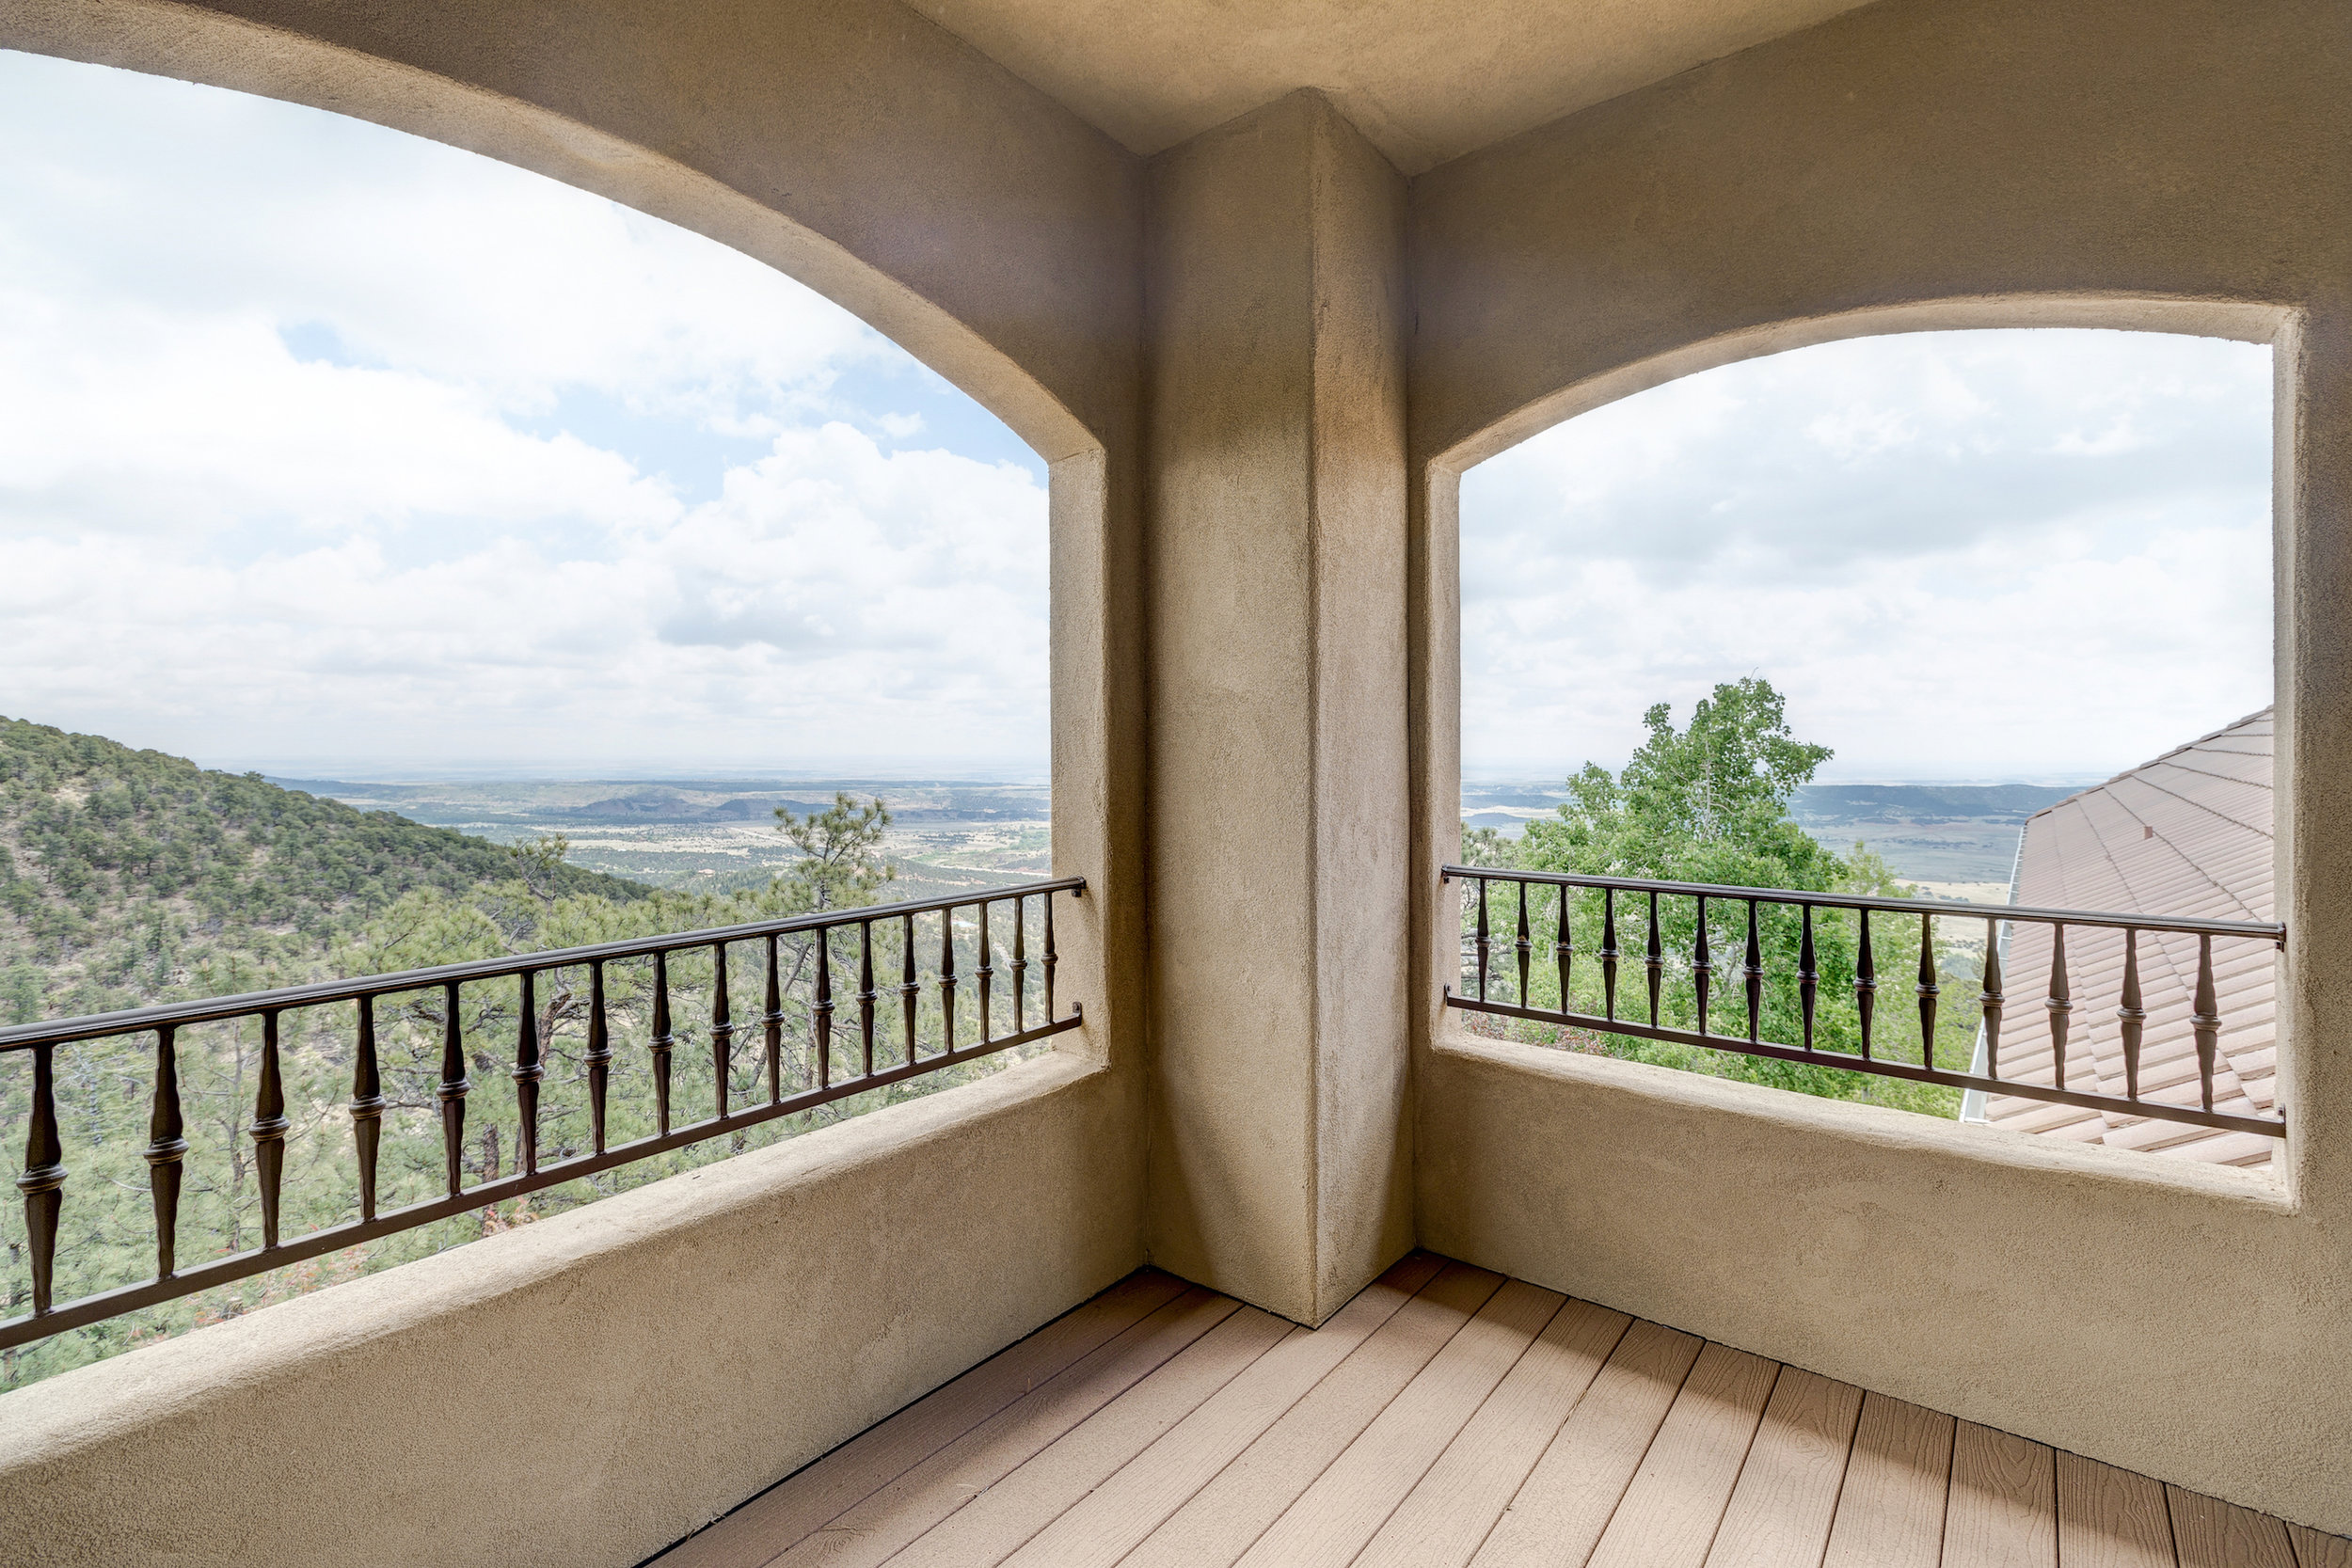 16-Patio off guest quarters sitting room.jpg